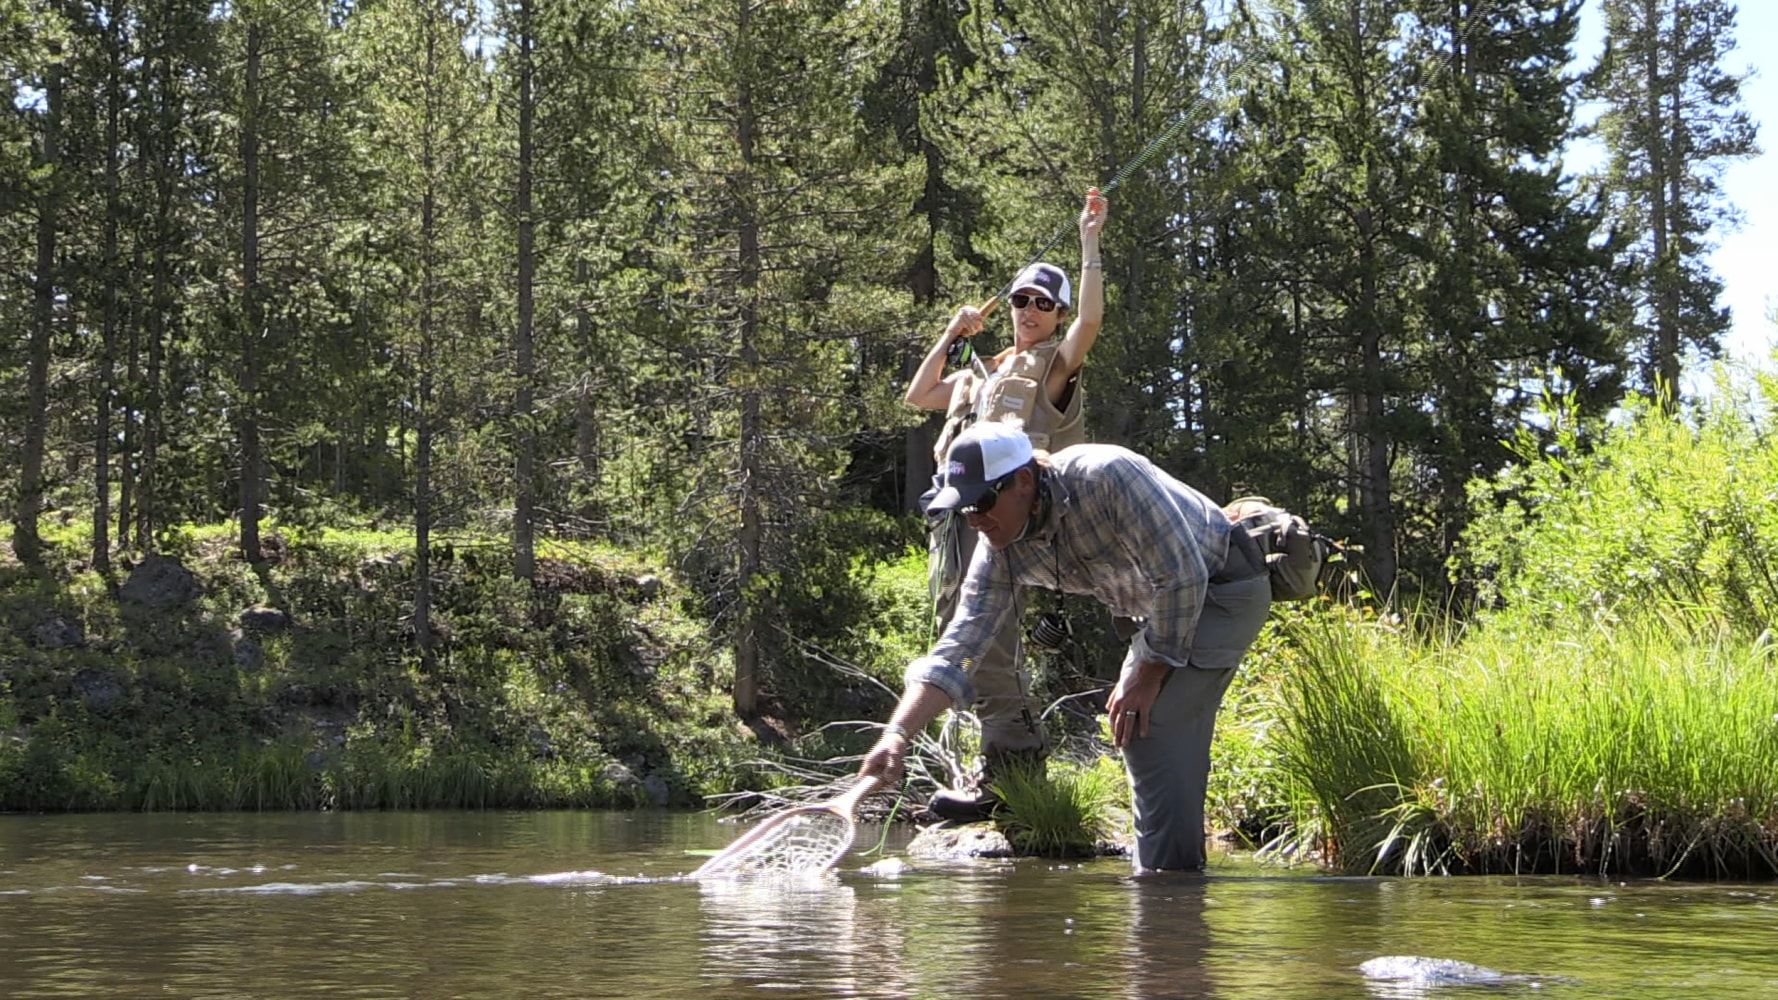 women and fly fishing archives - orvis news, Fly Fishing Bait